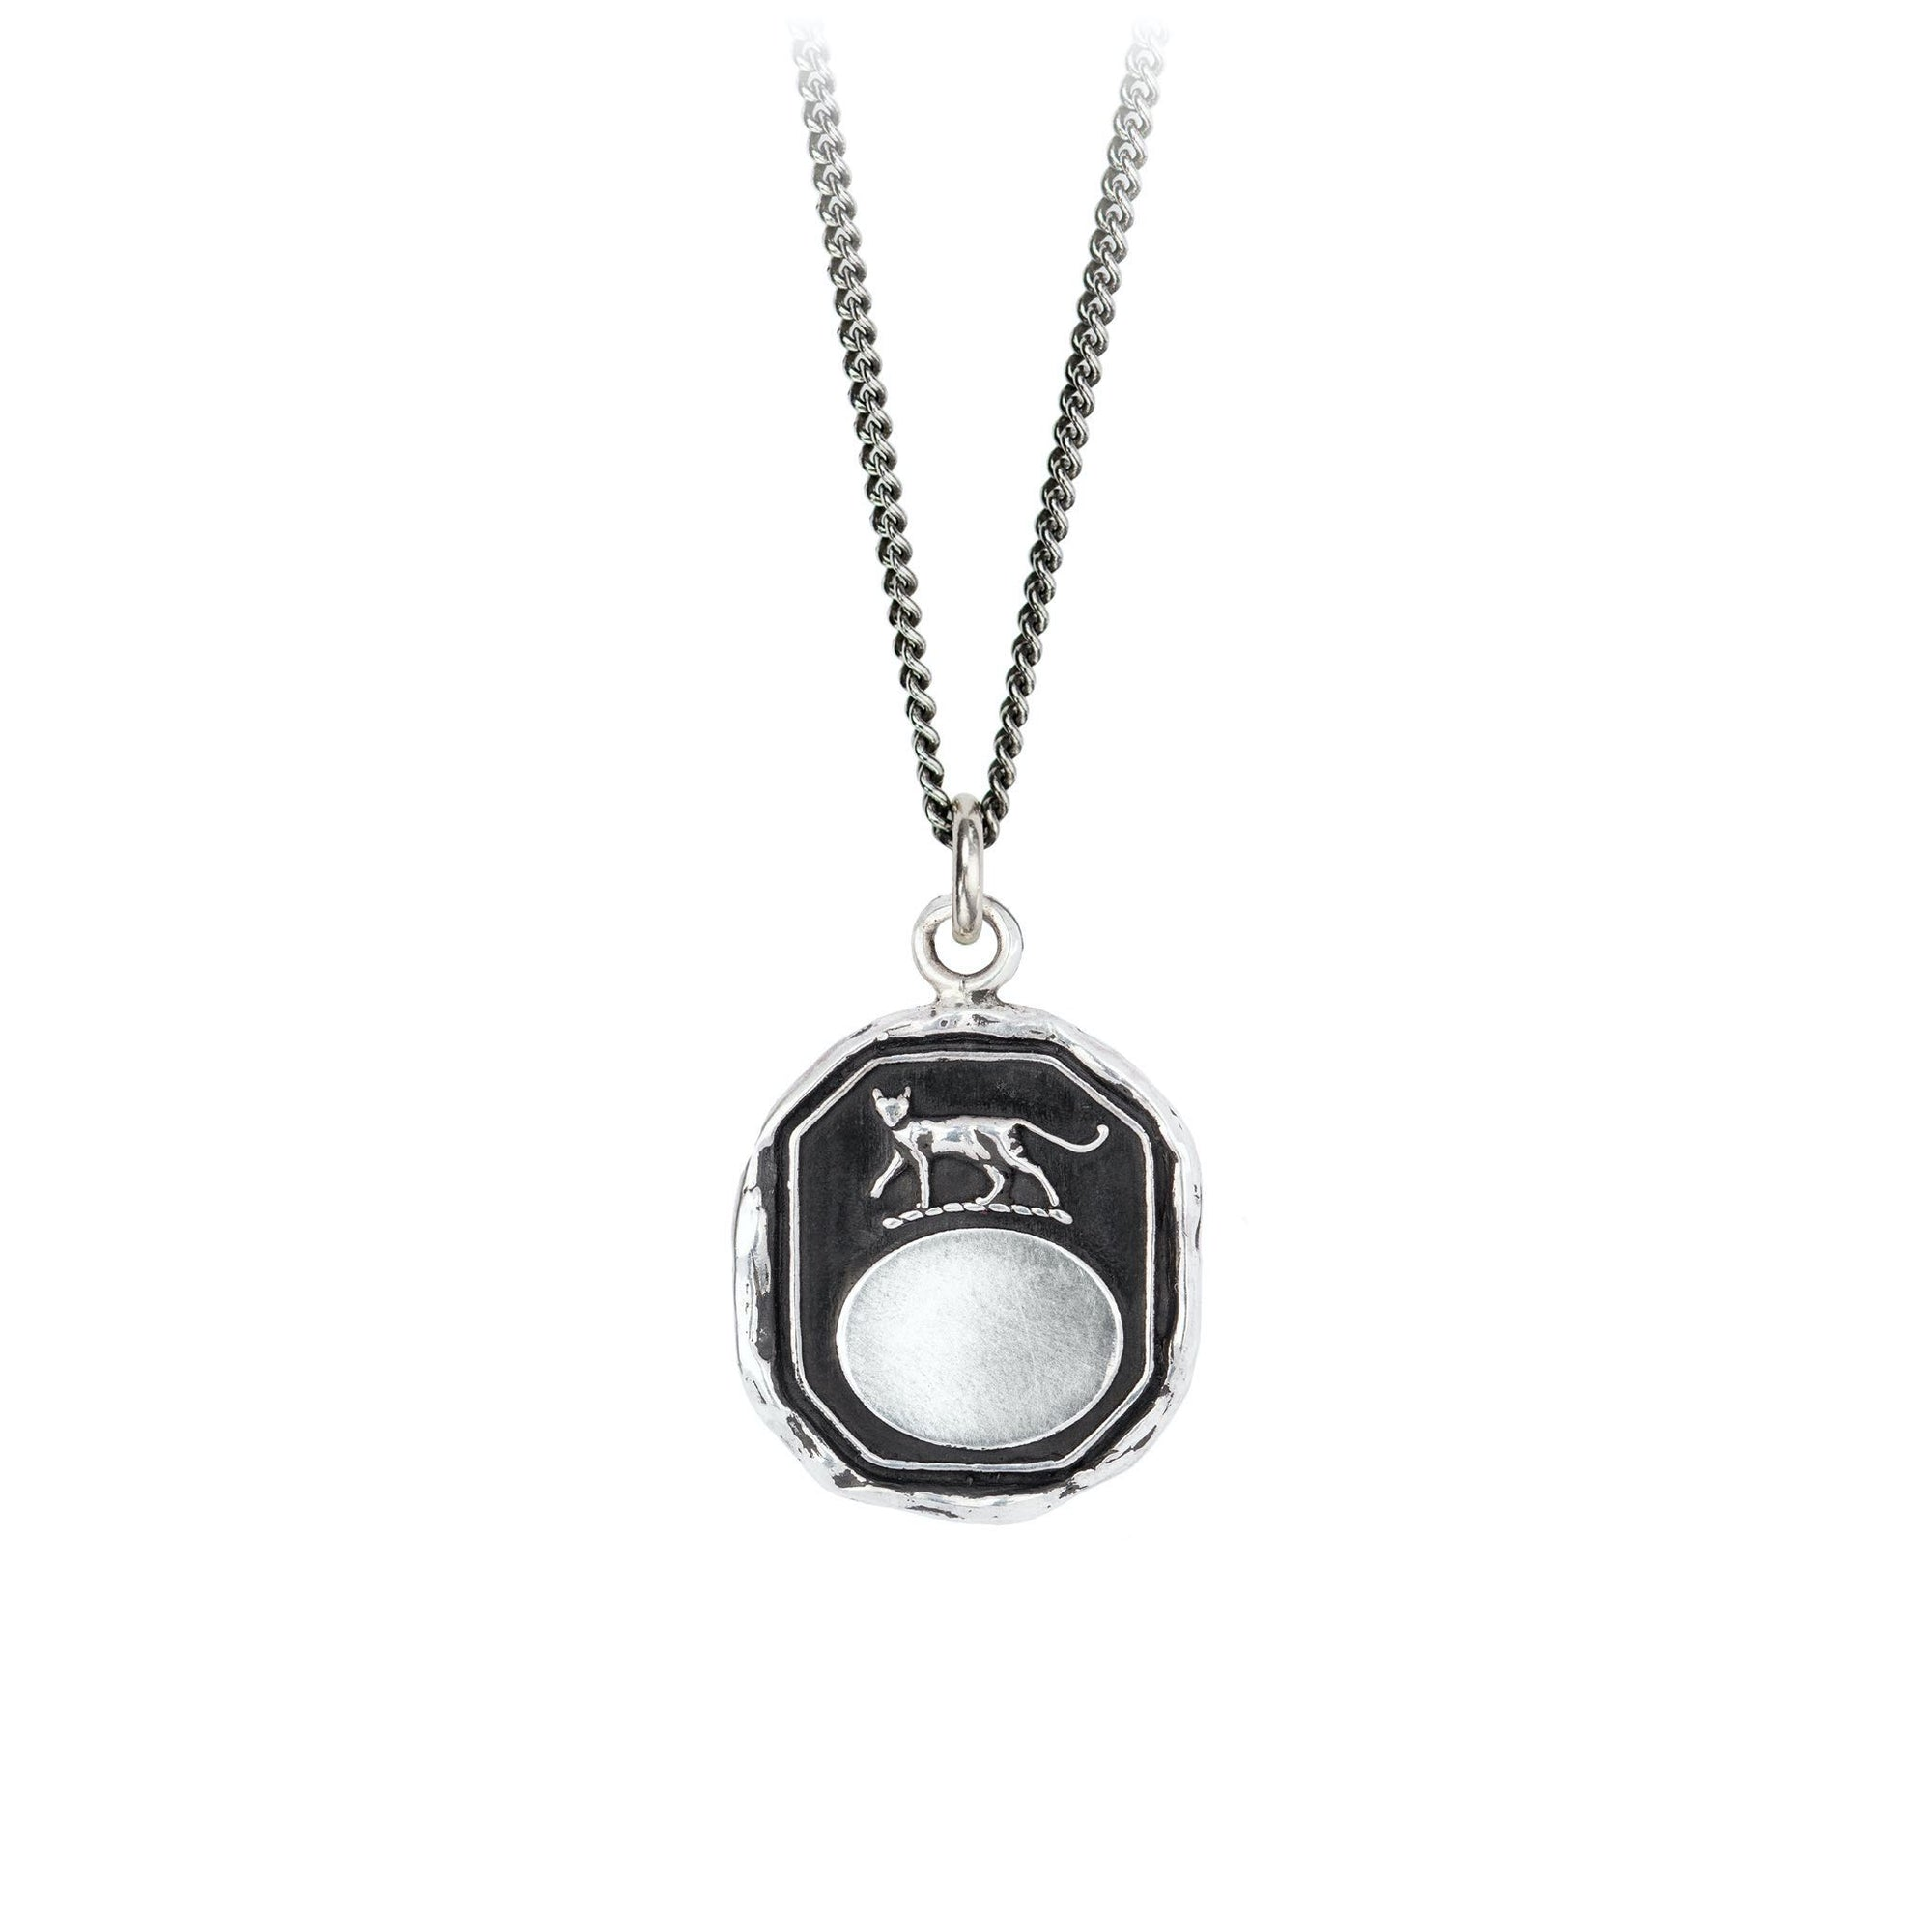 Pyrrha Cat Engravable Talisman Necklace Fine Curb Chain Silver